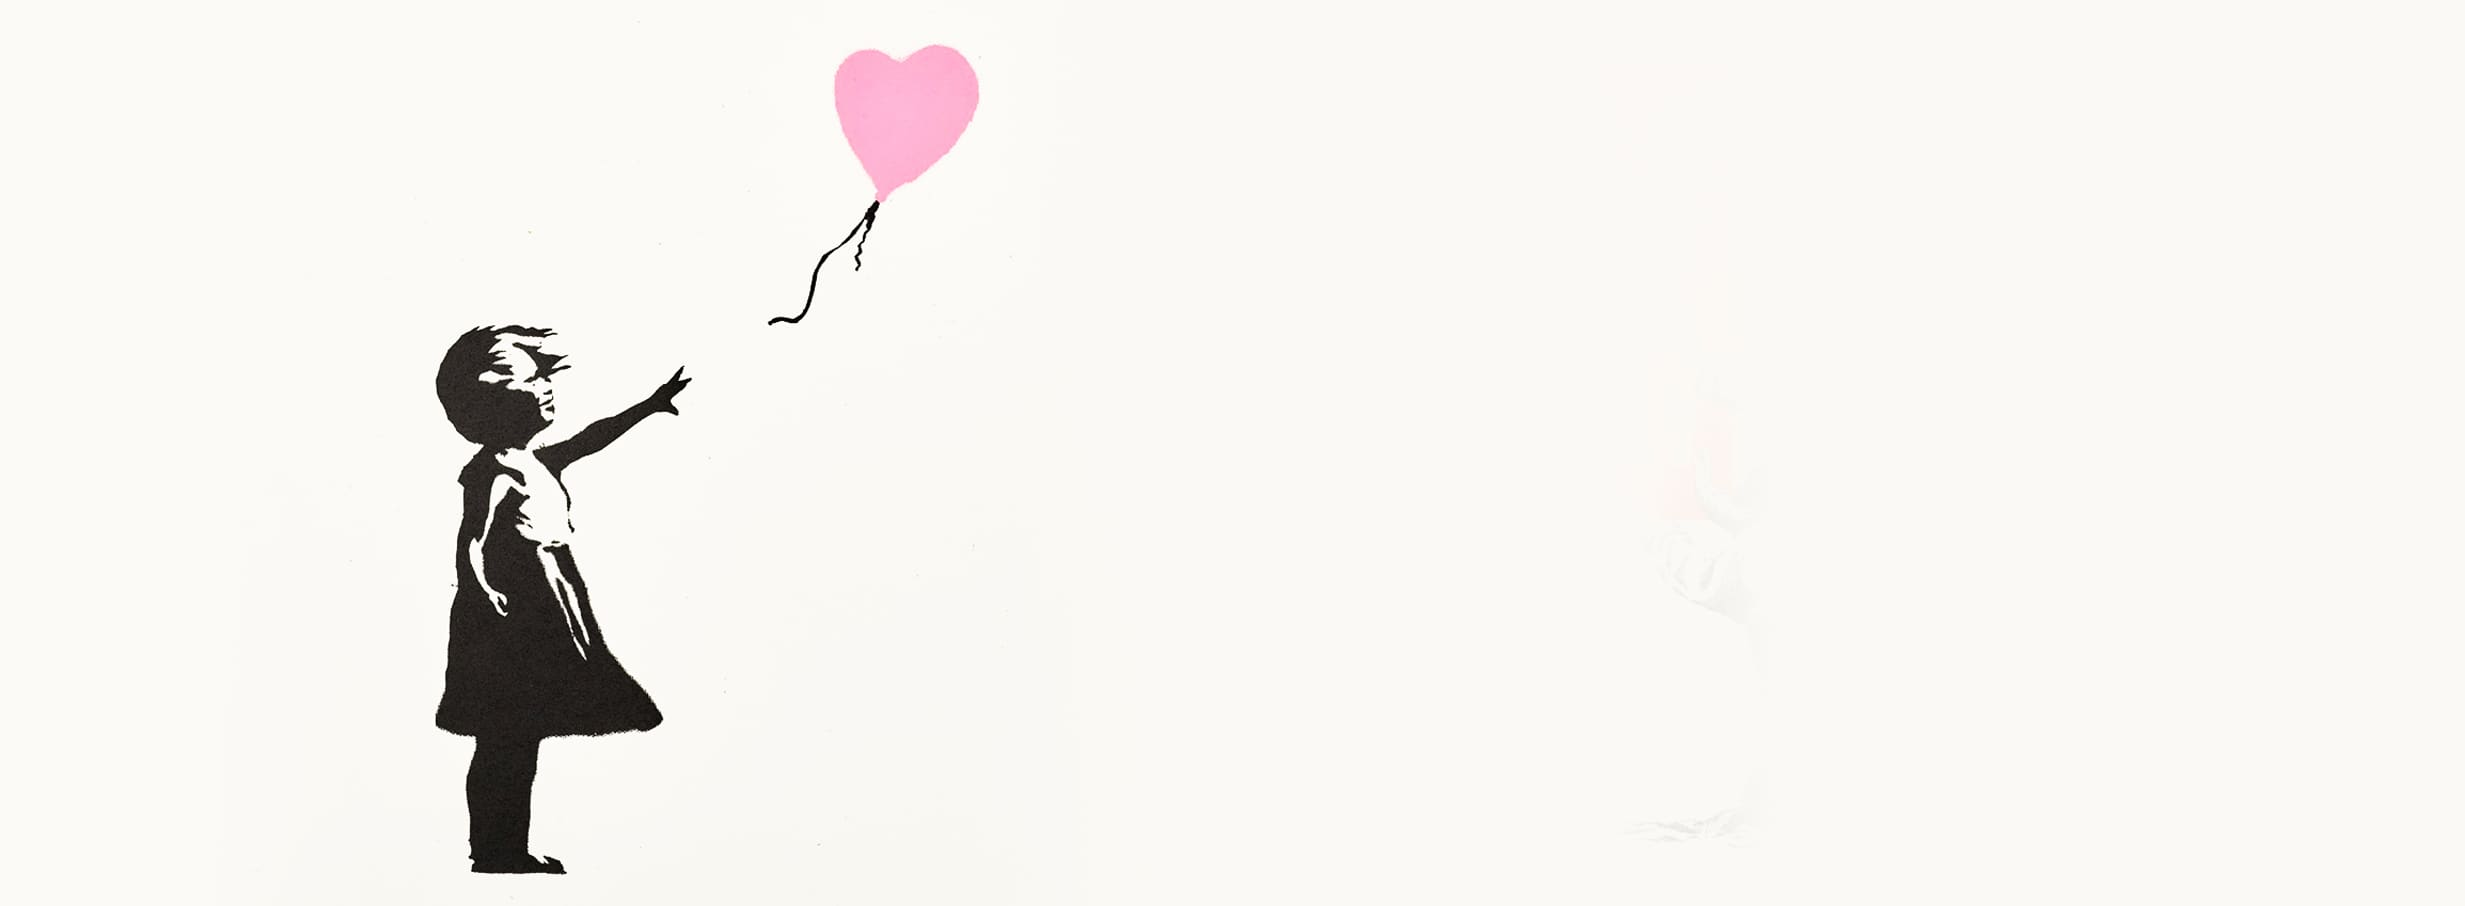 GIRL WITH BALLOON (PINK)